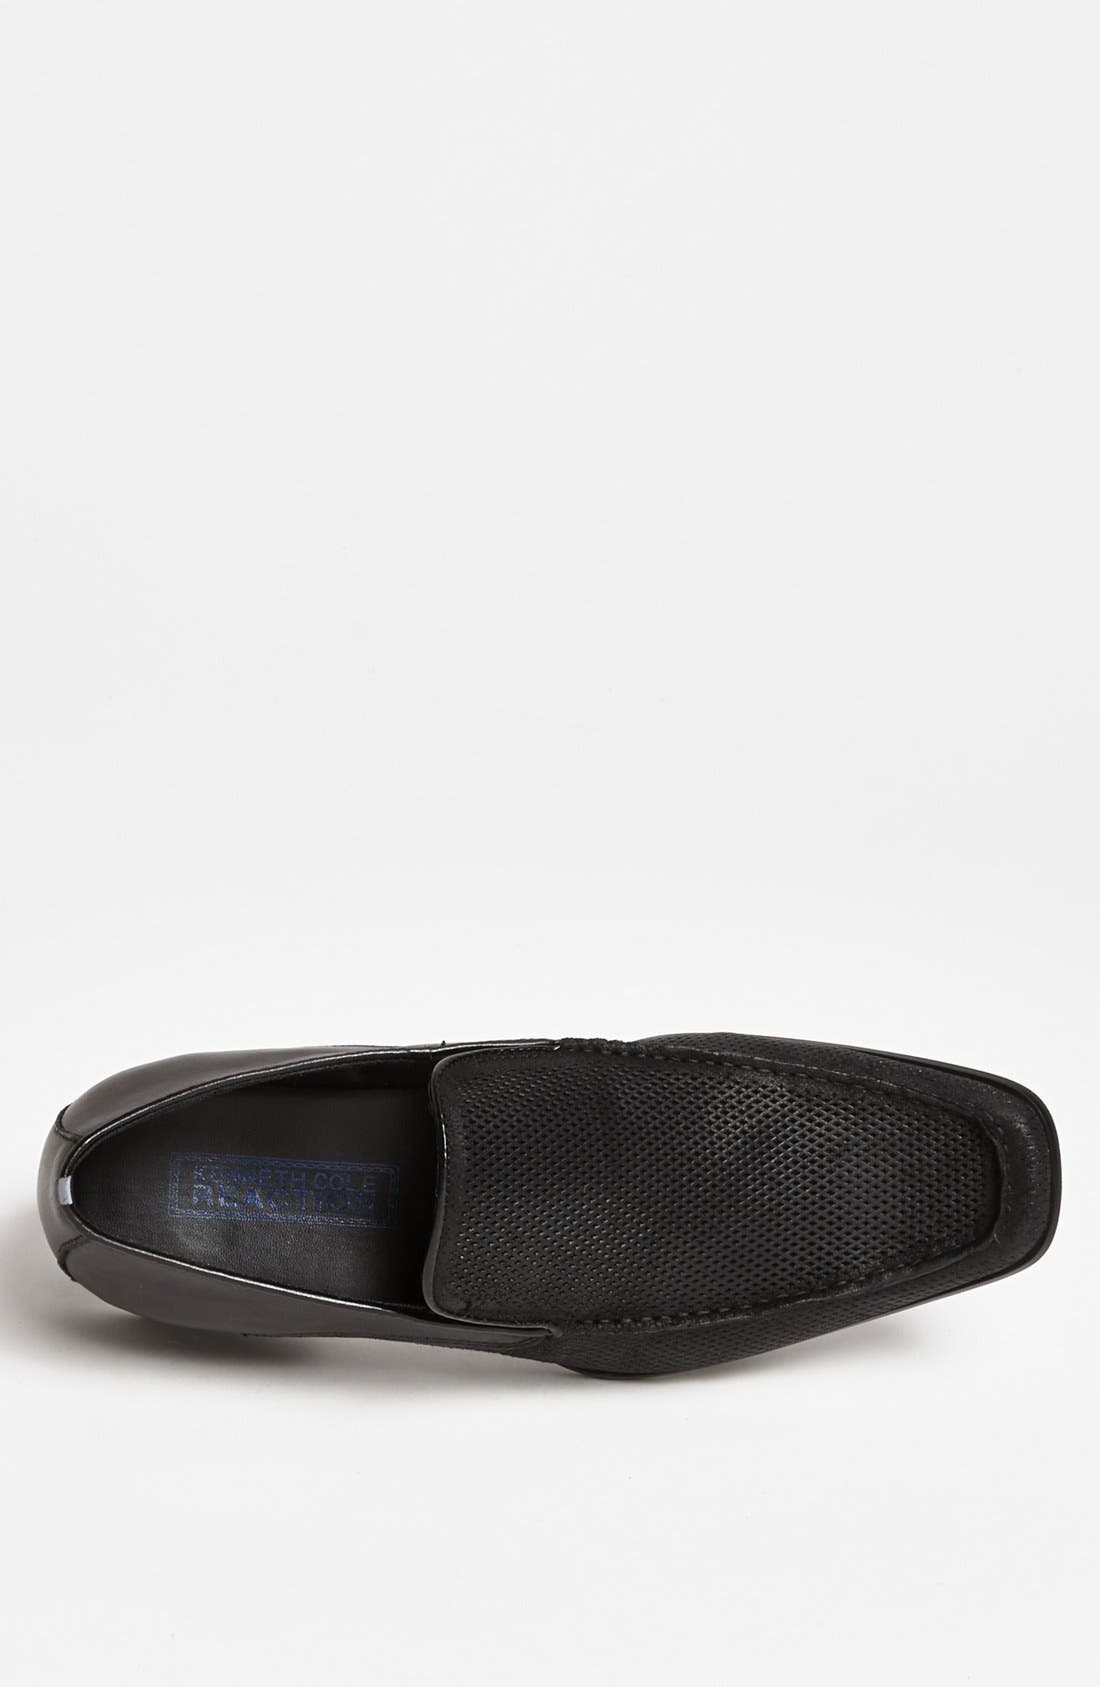 Alternate Image 3  - Kenneth Cole Reaction 'Note Worthy' Venetian Loafer